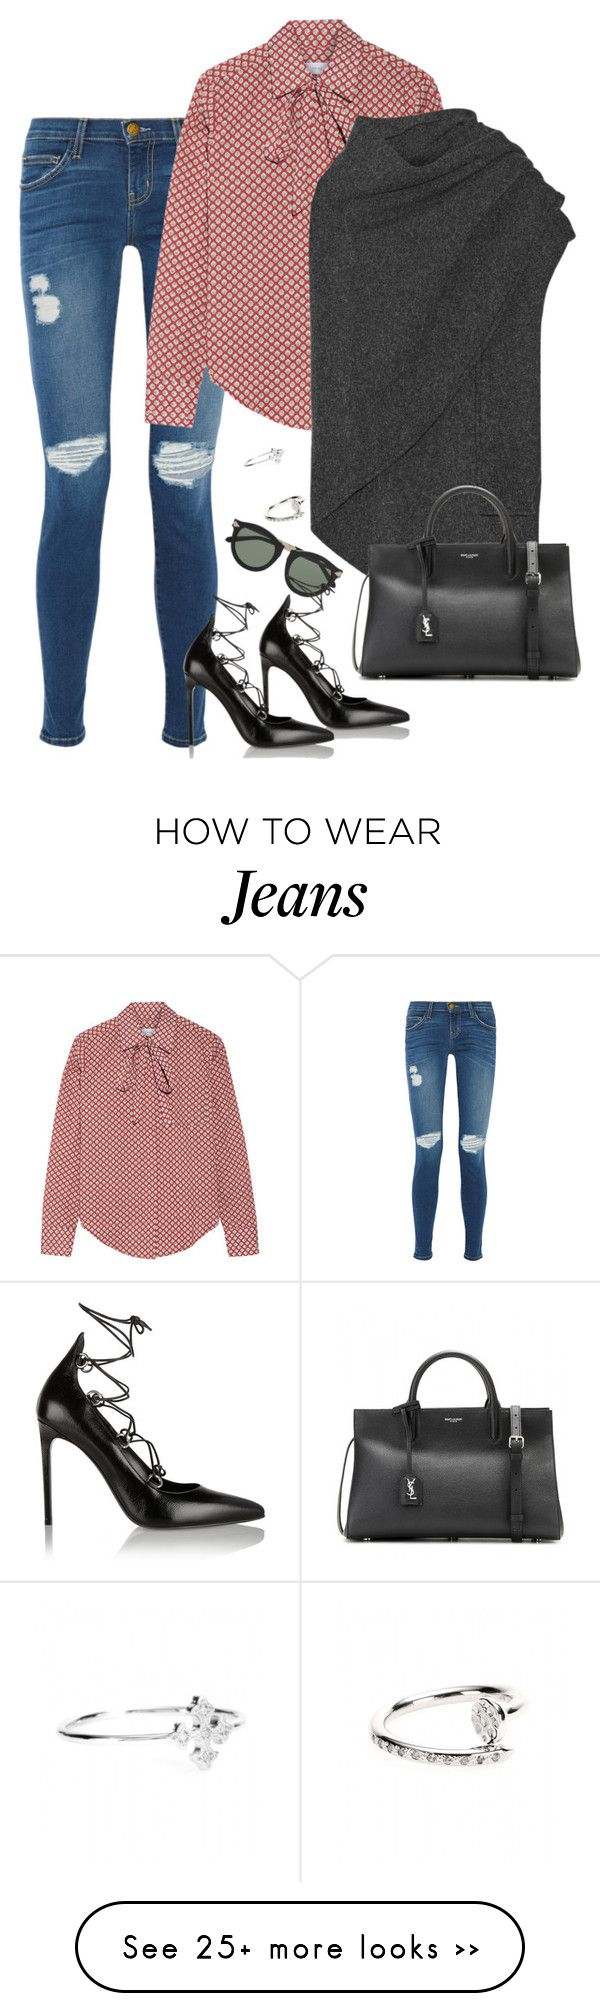 """""""Pussybow"""" by alwayswearwhatyouwanttowear on Polyvore featuring Current/Elliott, Roberto Marroni, Title A, Lemaire, Karen Walker, Yves Saint Laurent, STONE, outfit, outfits and fashionset"""